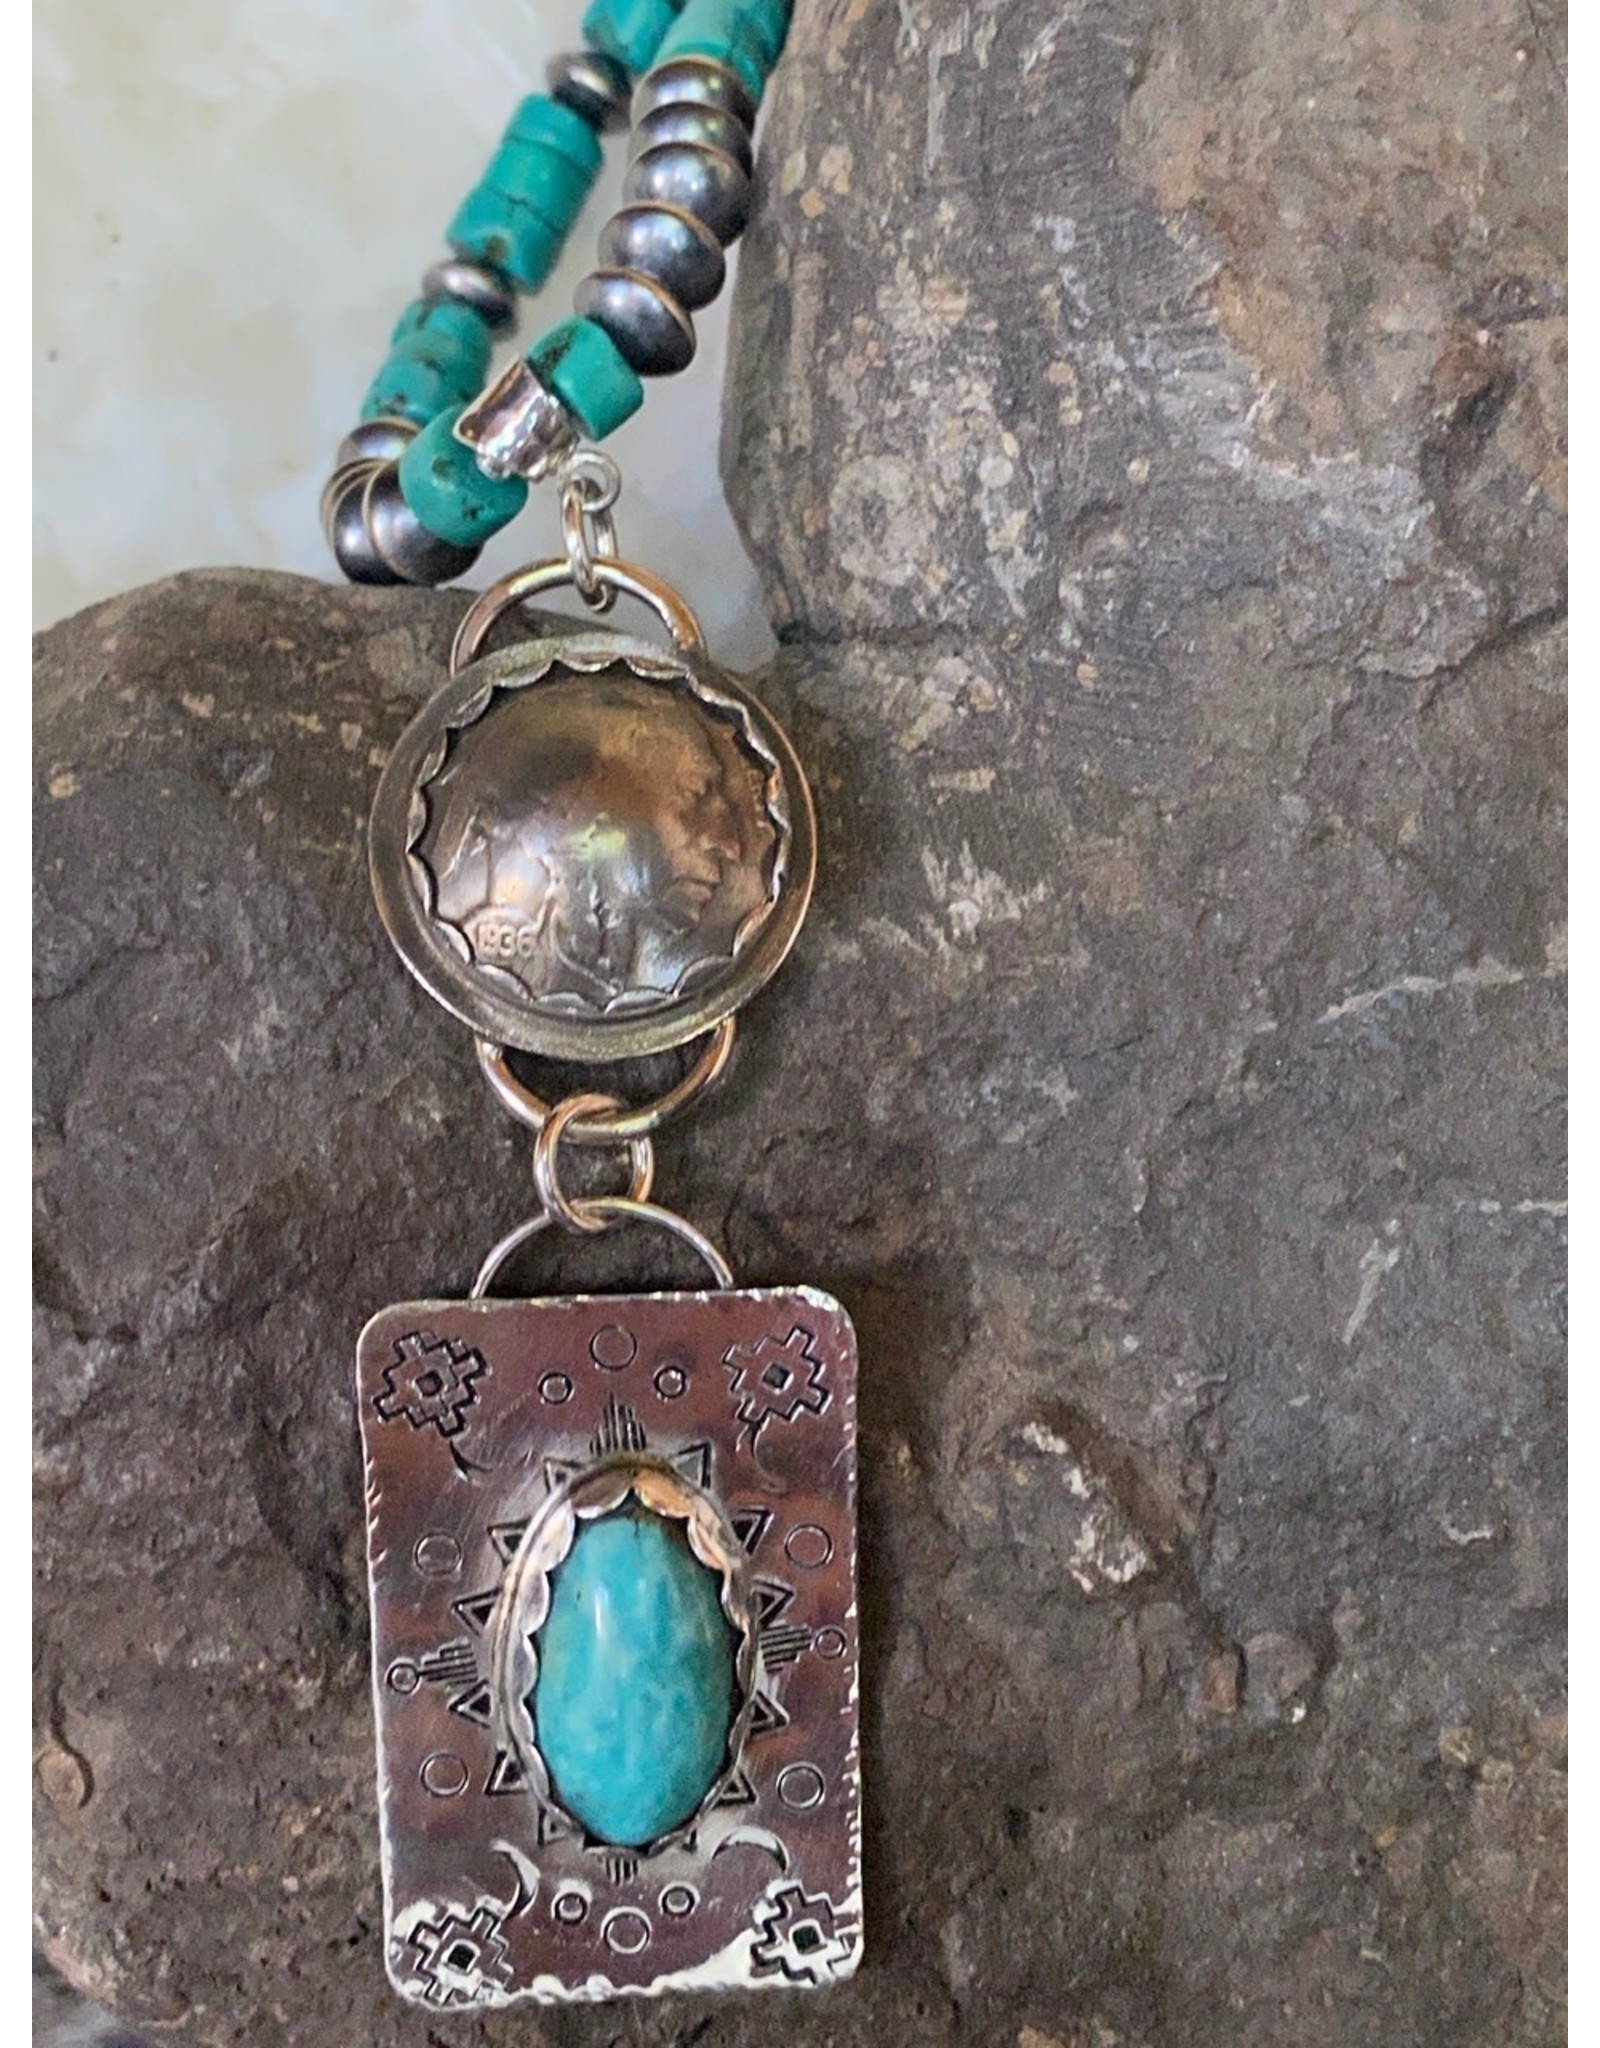 Annette Colby - Jeweler Indian Nickel with Royston Sterling Pendant Necklace by Annette Colby